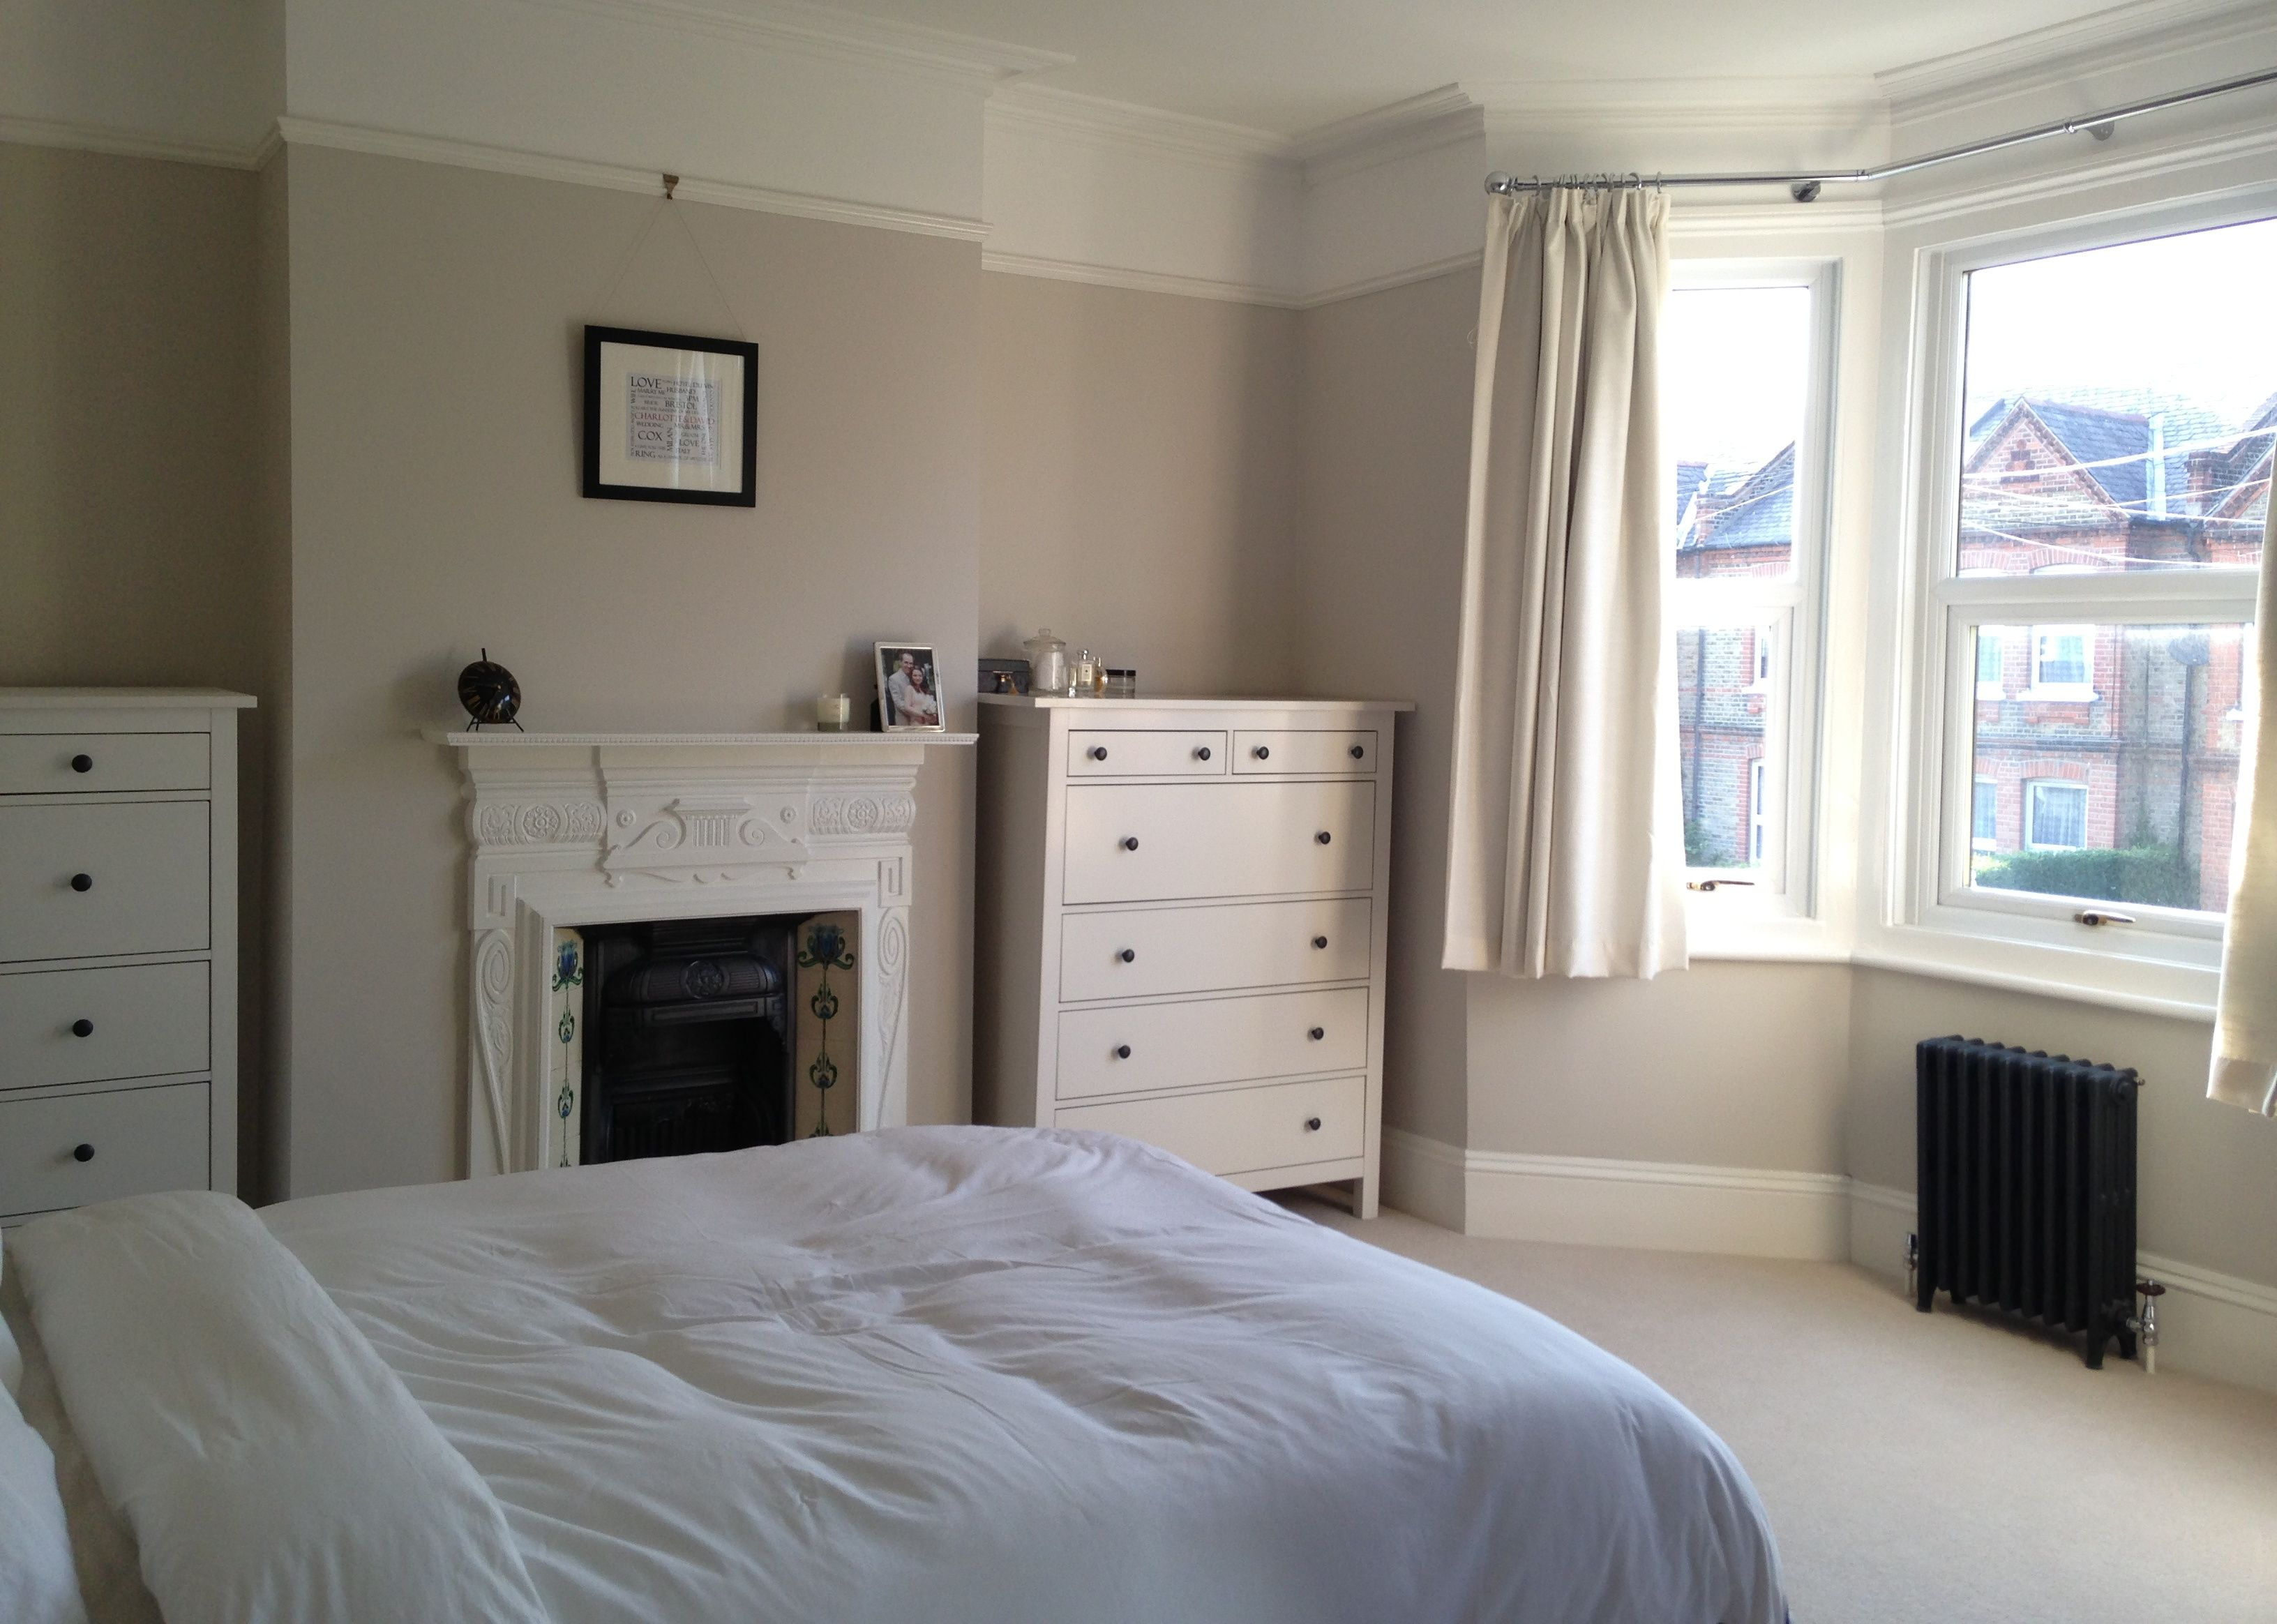 Master bedroom housenumber59 egyptian cotton dulux paint for Dulux paint ideas bedroom